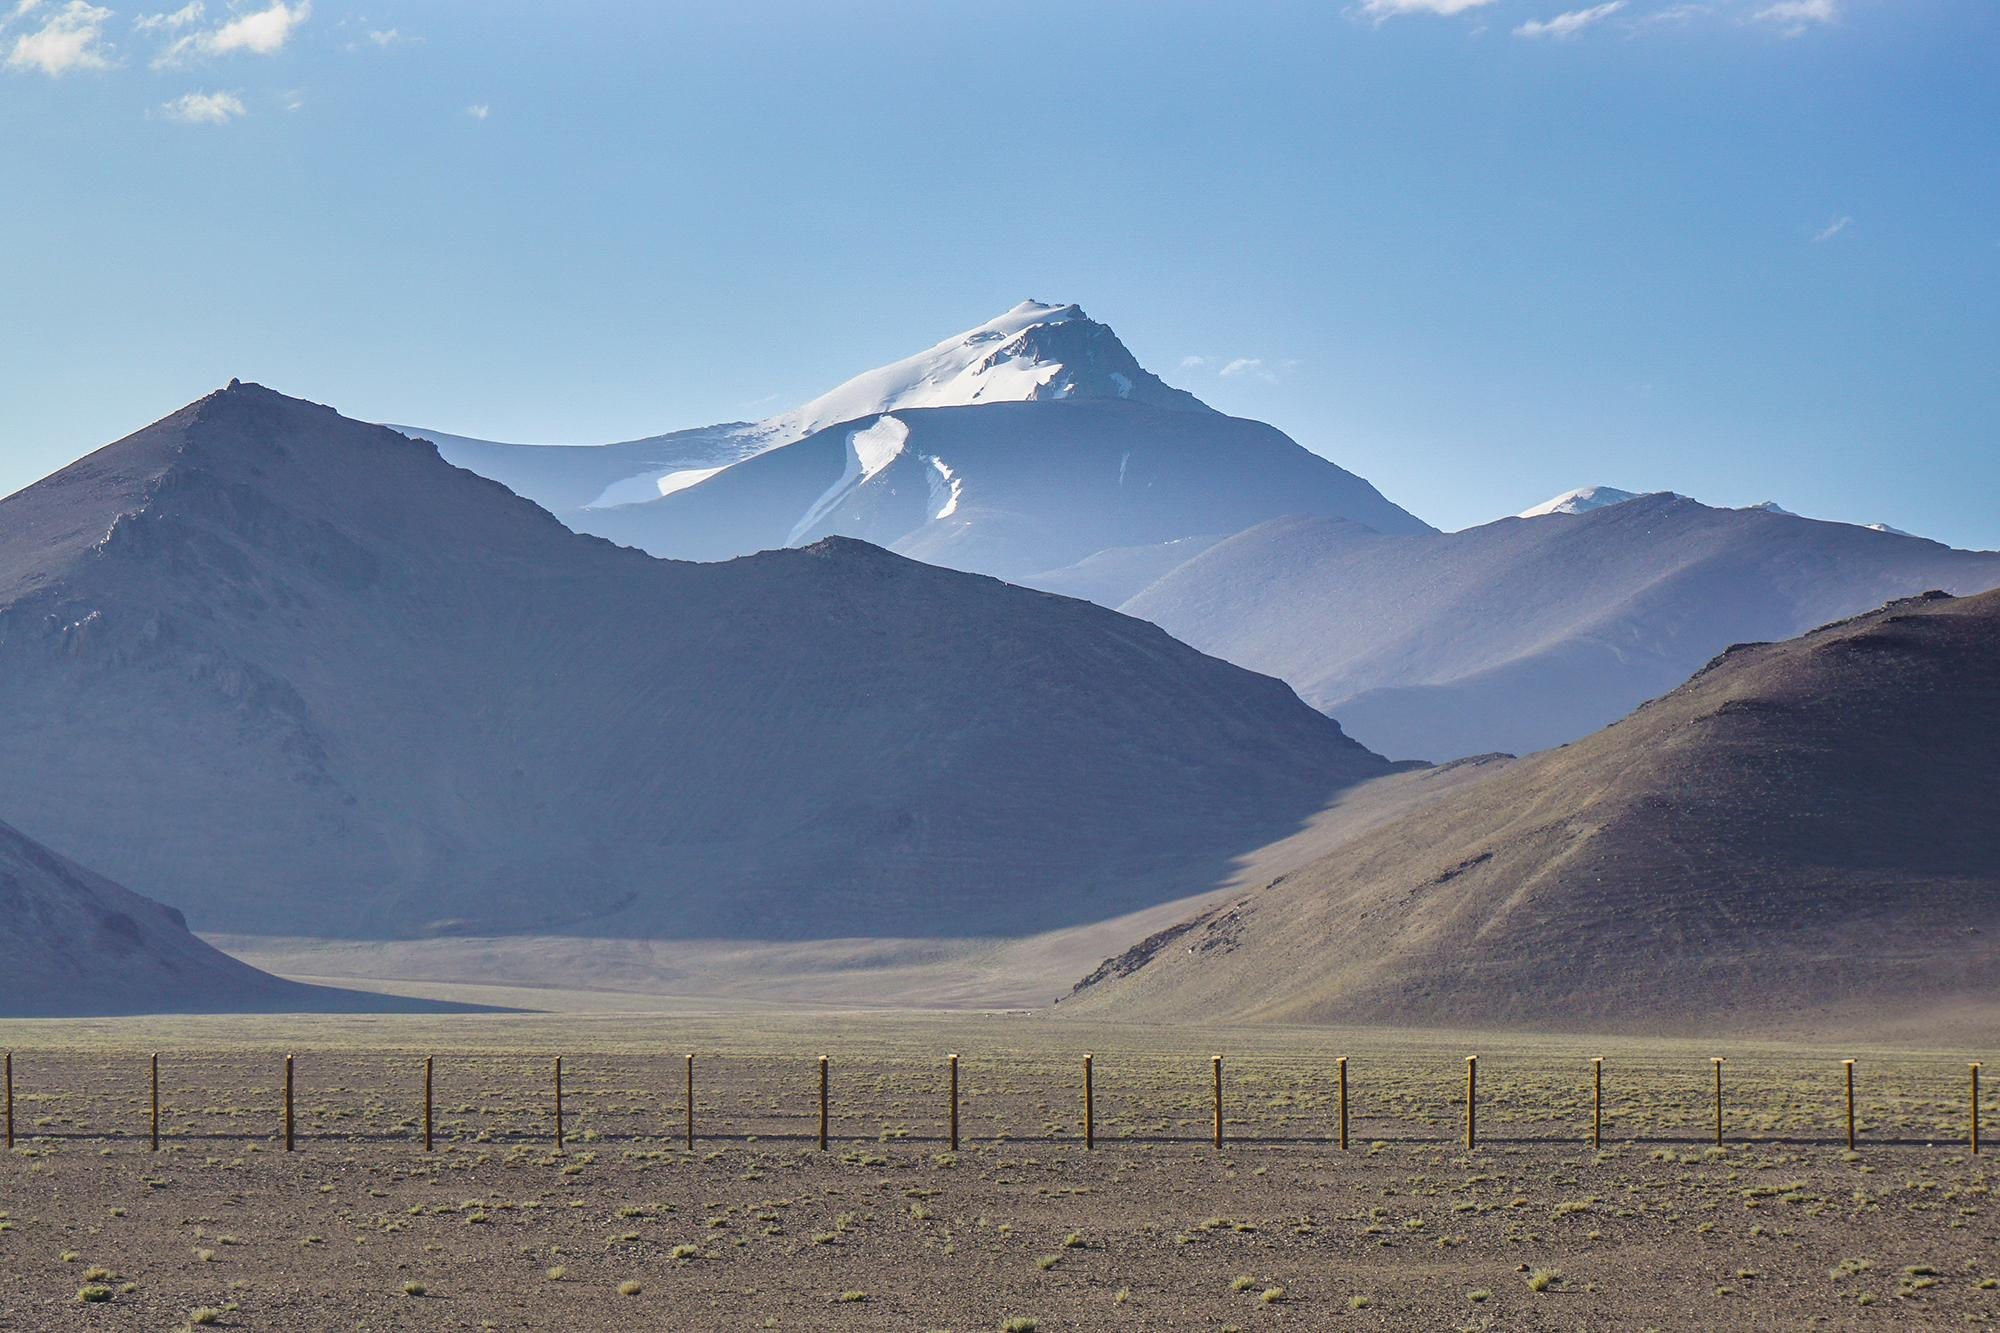 The new Chinese border fence with the Sarykol Range of the Pamirs just beyond.